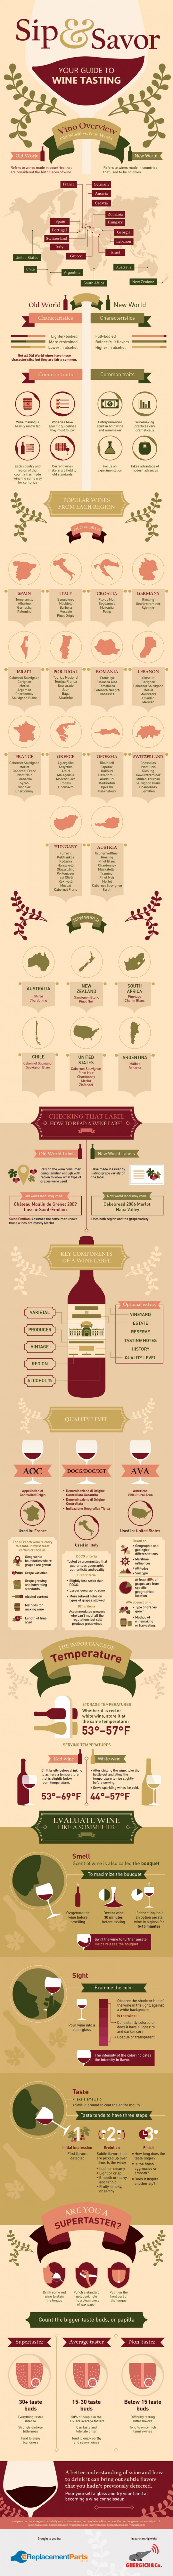 Sip and Savor: Your Guide to Wine Tasting